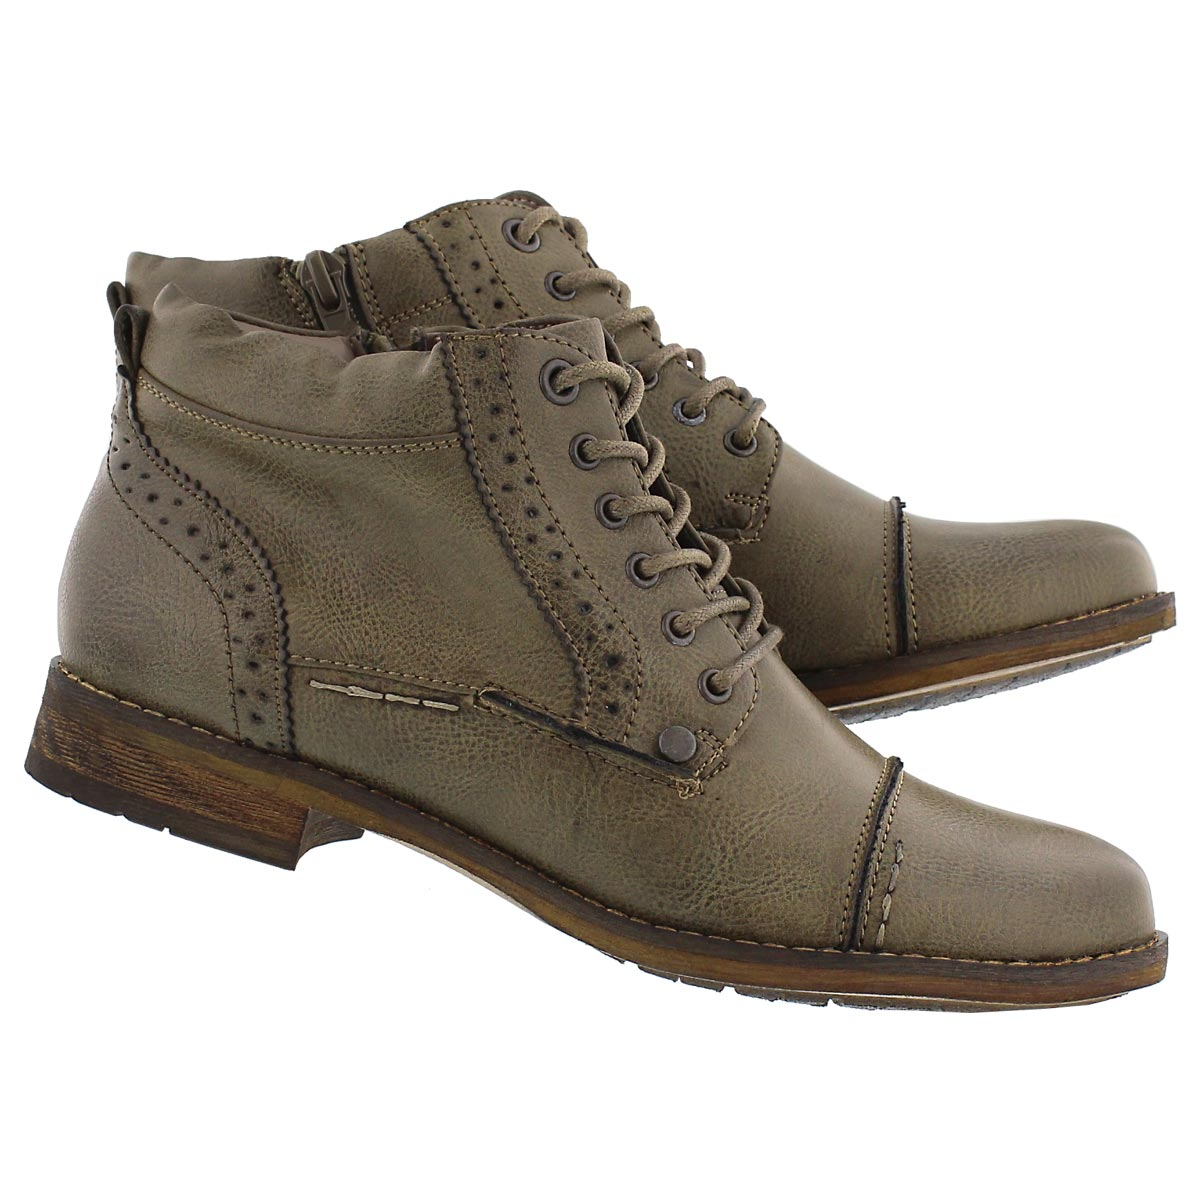 Lds Belicia II taupe lace up ankle boot